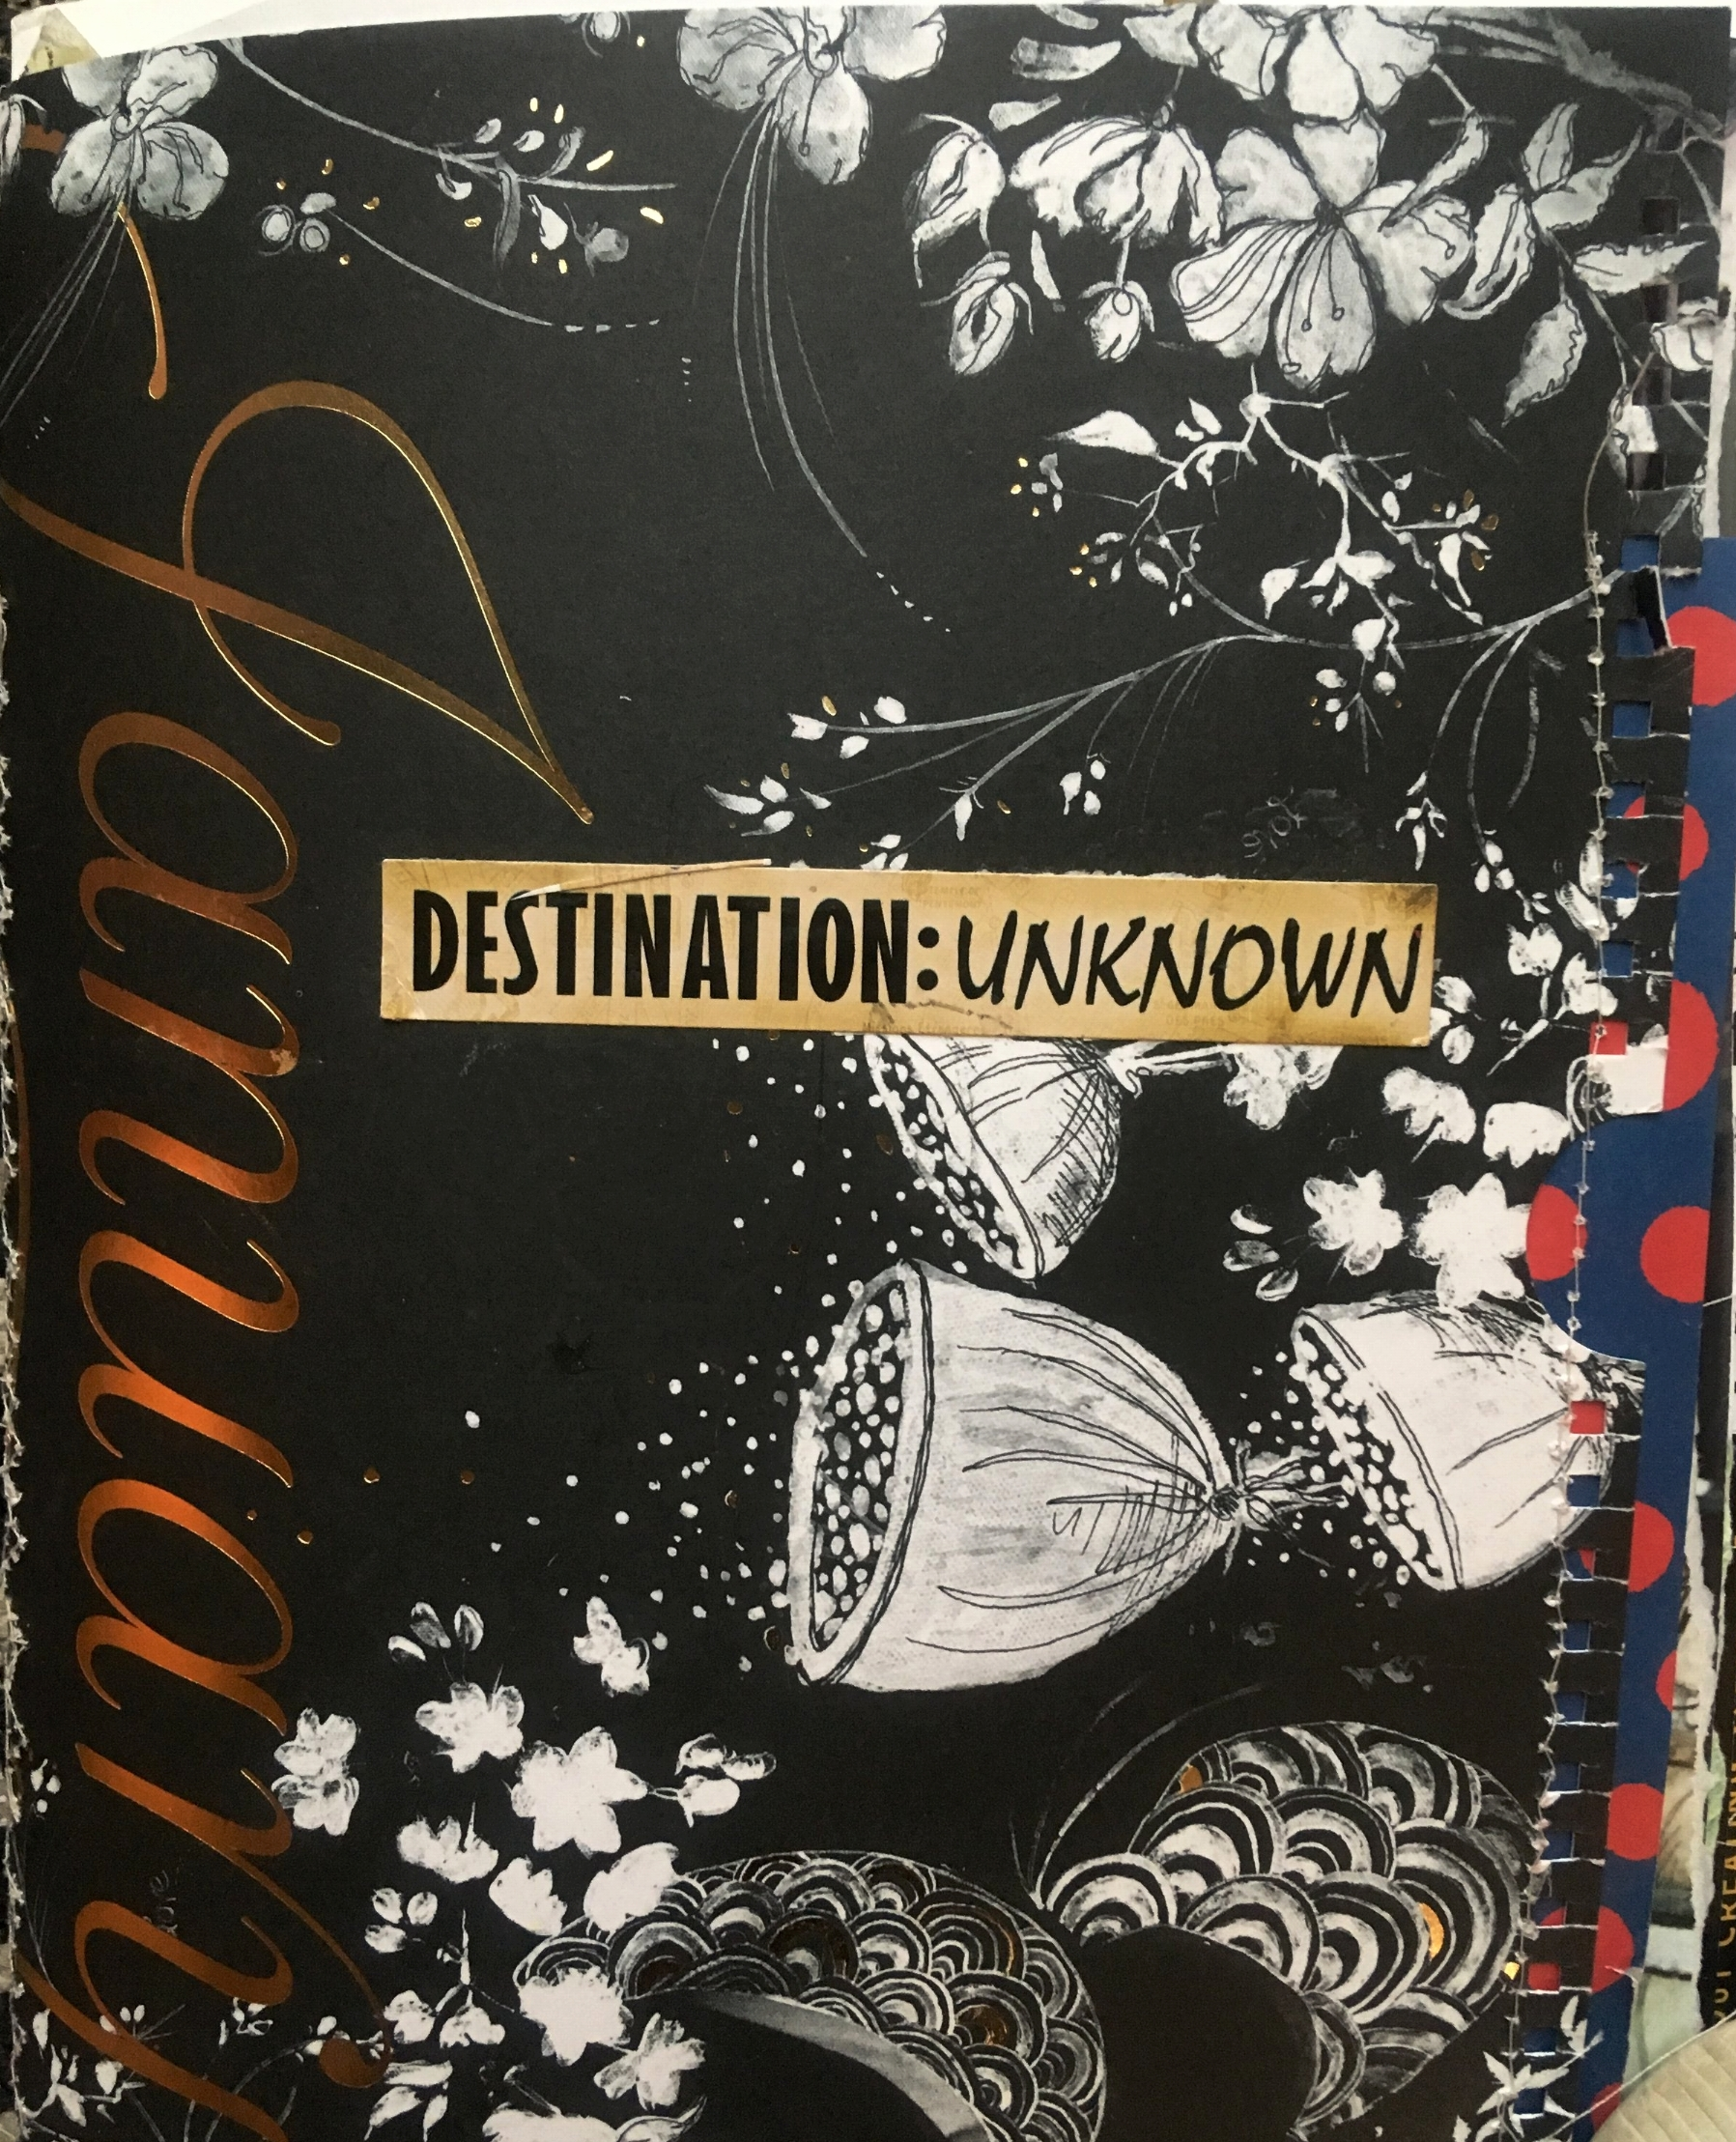 I have been neglecting my art journals. And, yet, I love keeping them. This is the journal I am currently making art in. I like my journals with pieces hanging out, threads and stitching apparent, and loosy-goosy. This is an Anthropologie catalog I am redesigning.